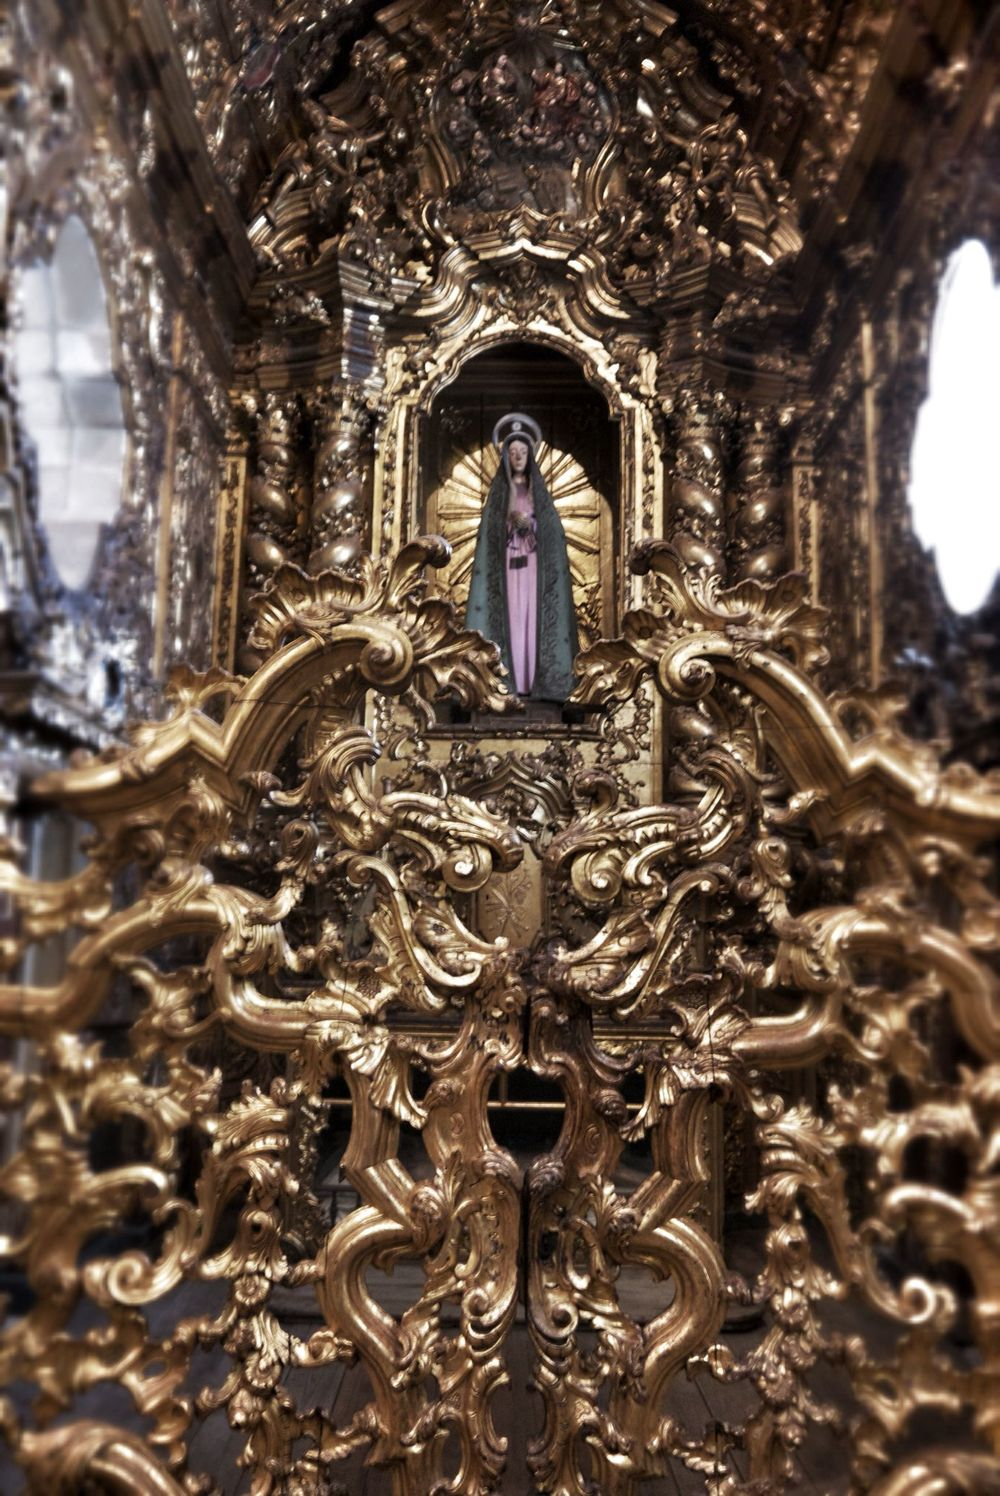 The virgin Mary had a particularly ornate chapel